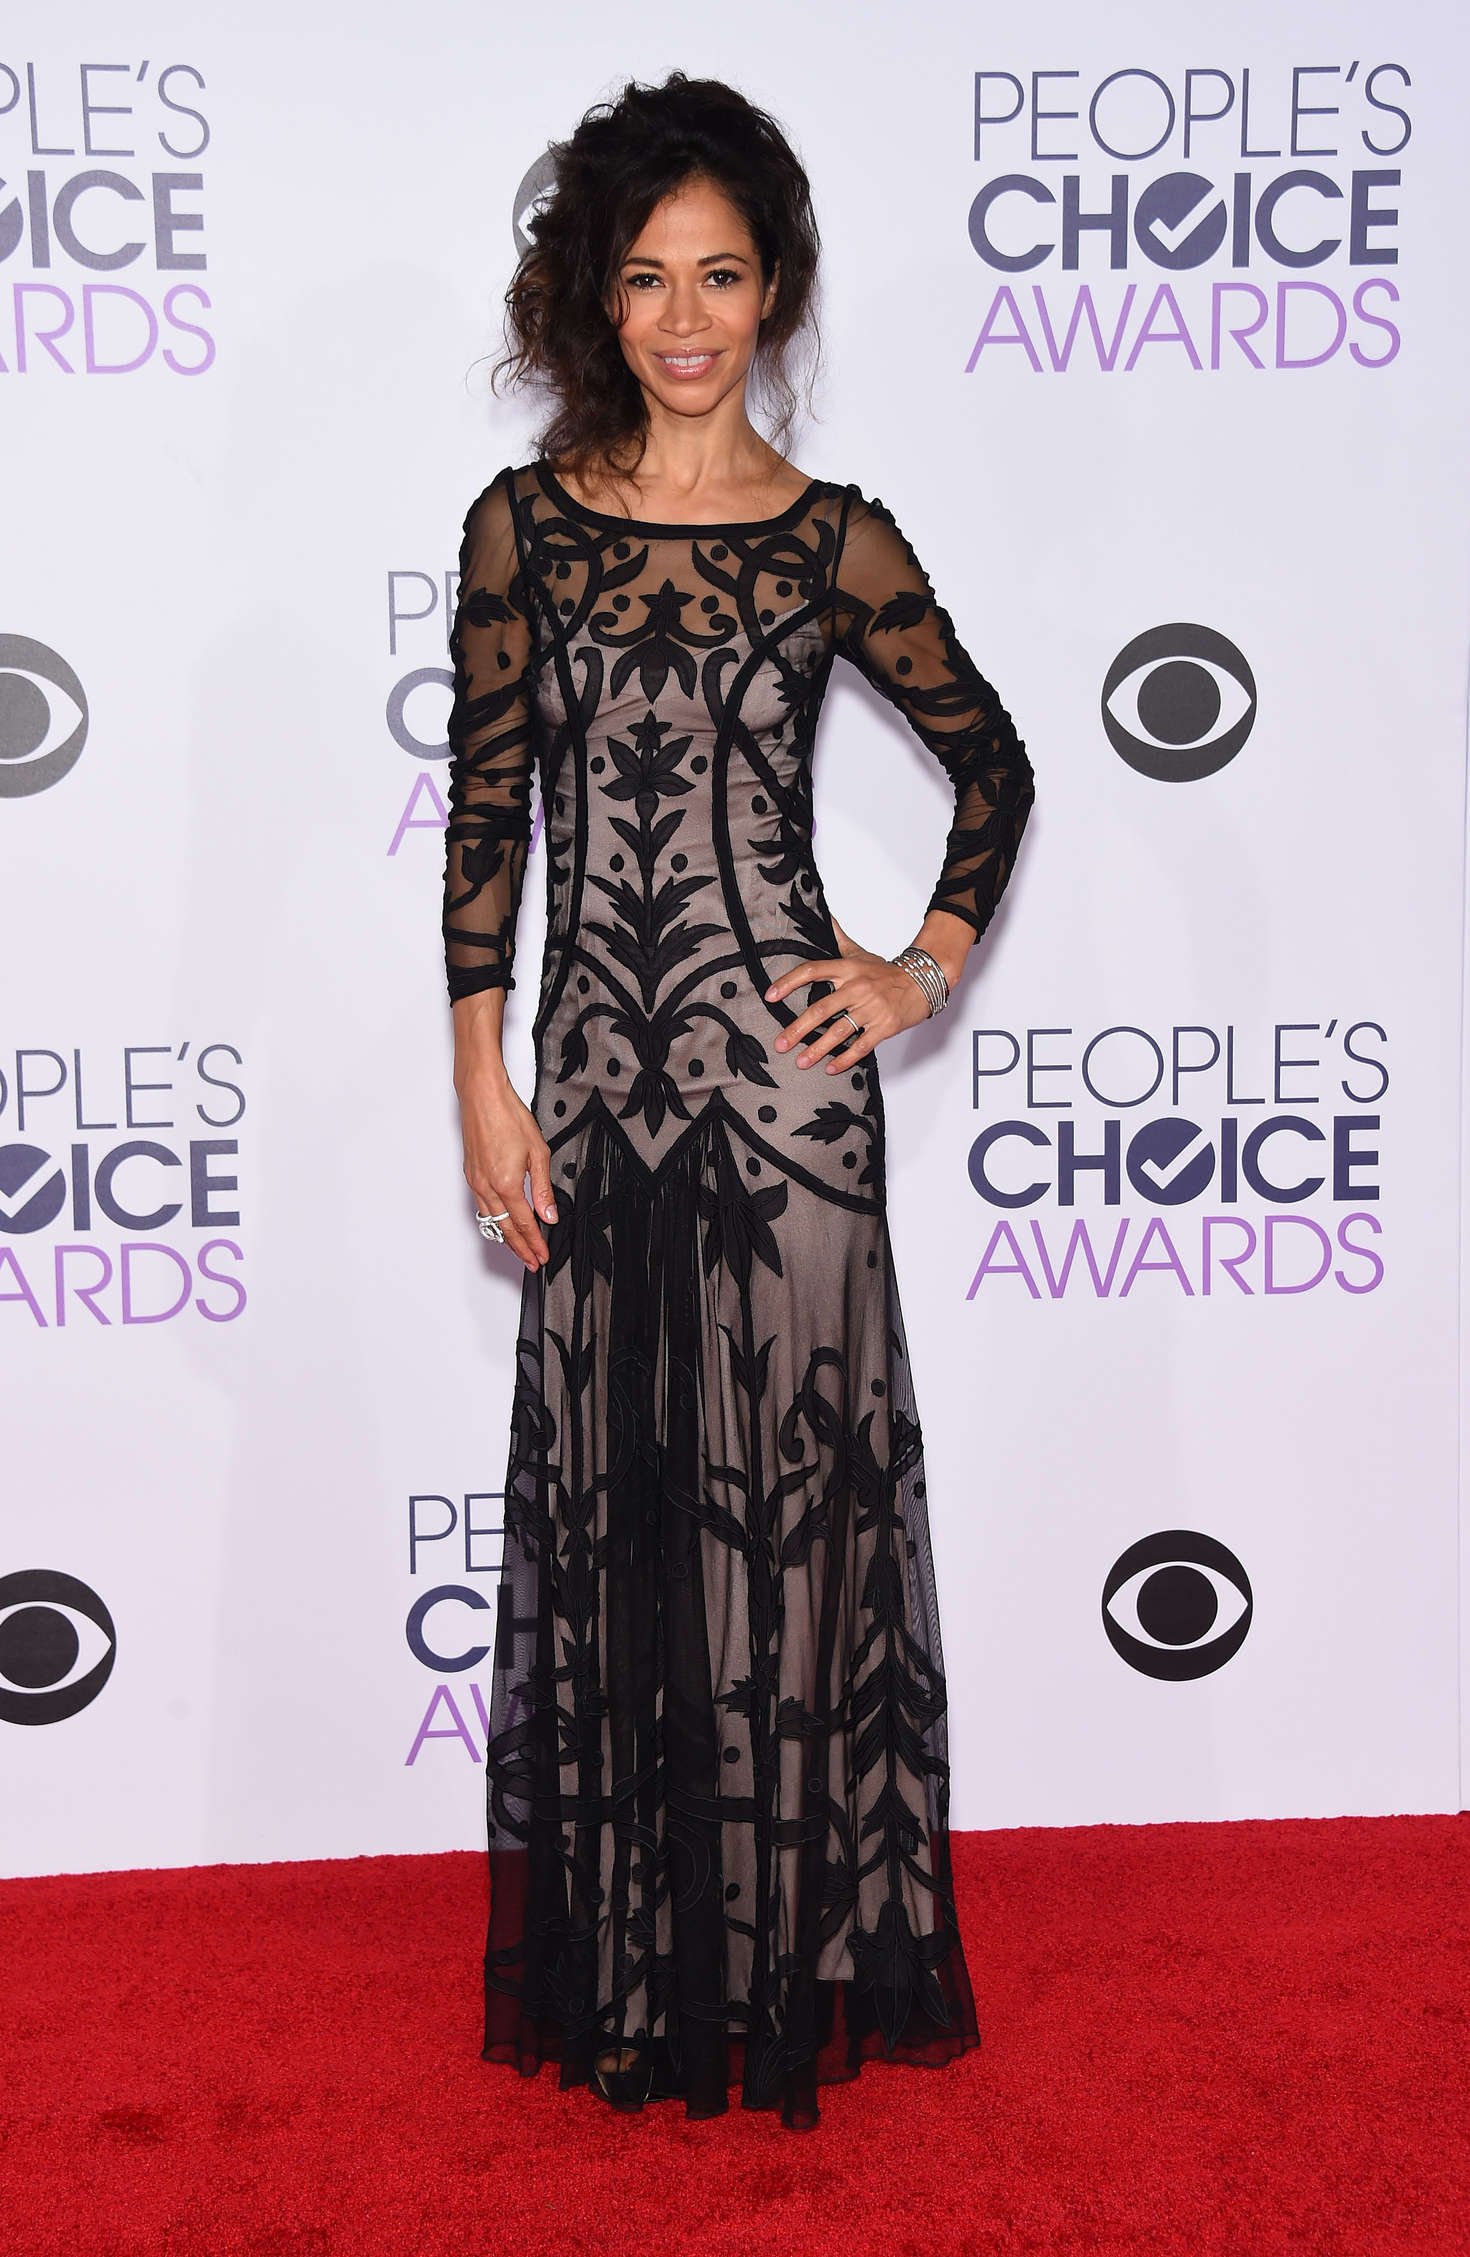 Sherri Saum Peoples Choice Awards in Los Angeles